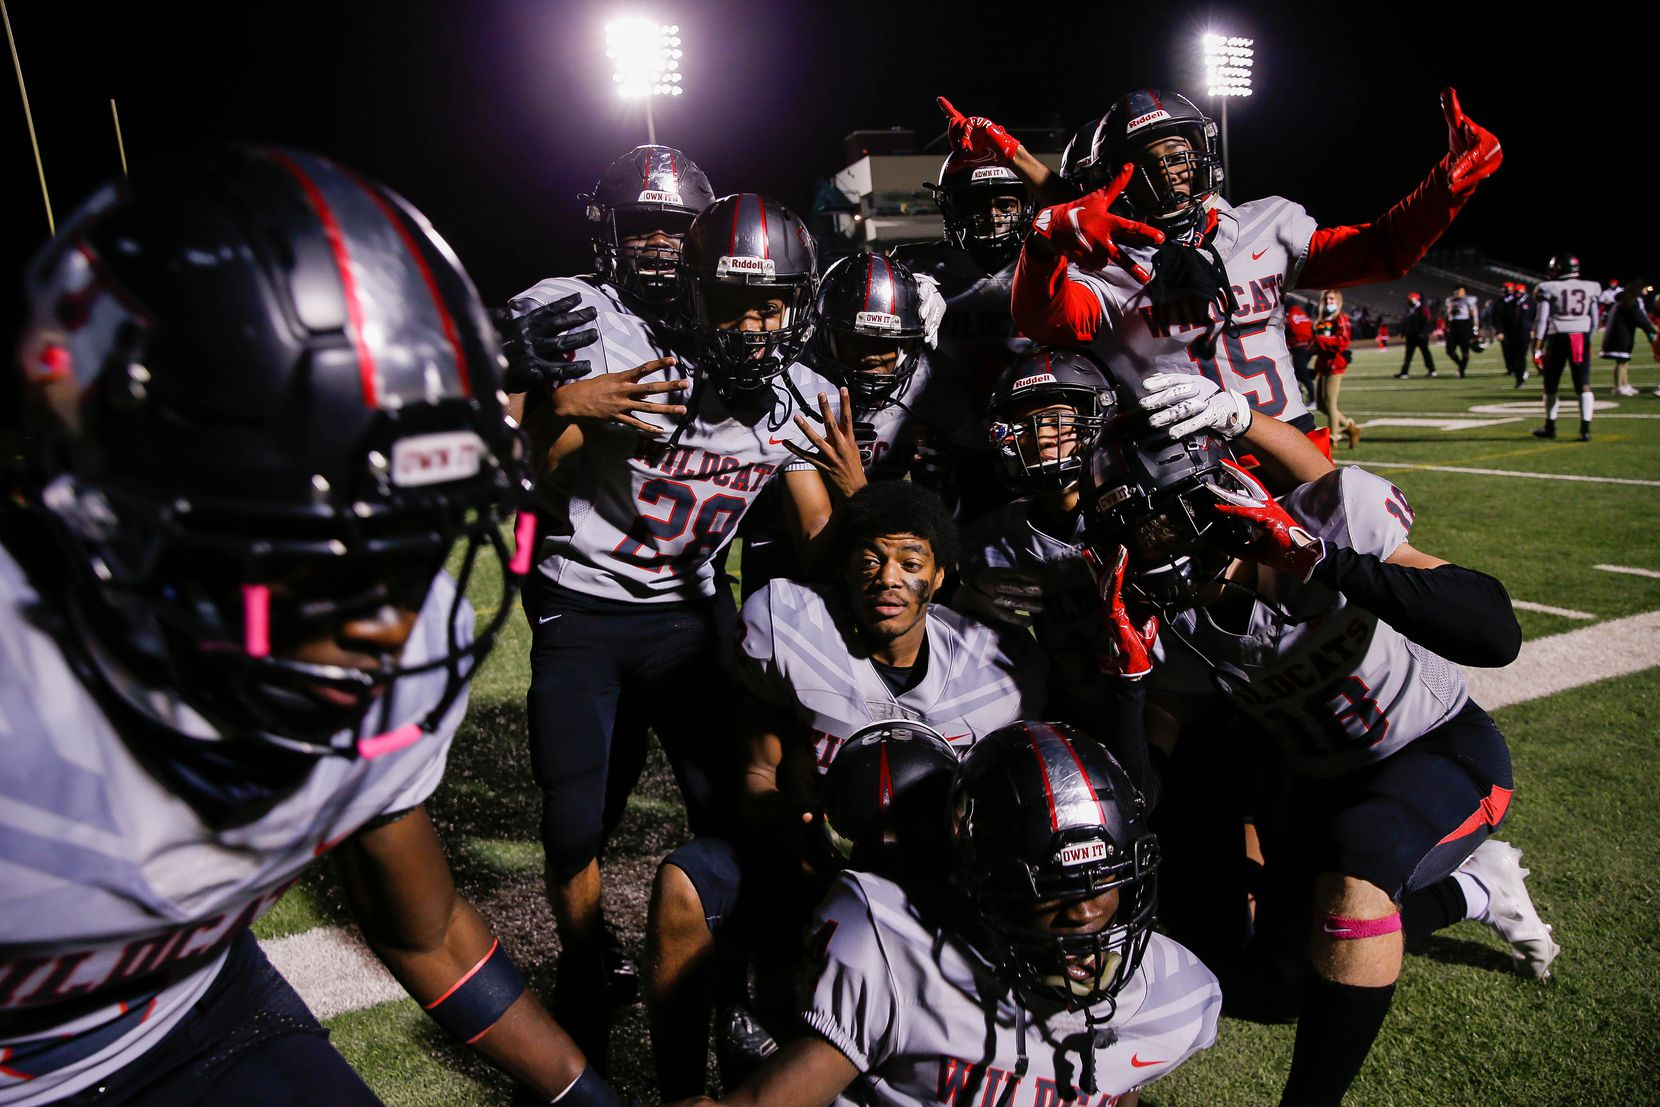 Lake Highlands players celebrate after winning against Irving MacArthur at Joy & Ralph Ellis Stadium in Irving on Friday, Oct. 23, 2020. Lake Highlands won the game, 44-19. (Juan Figueroa/ The Dallas Morning News)